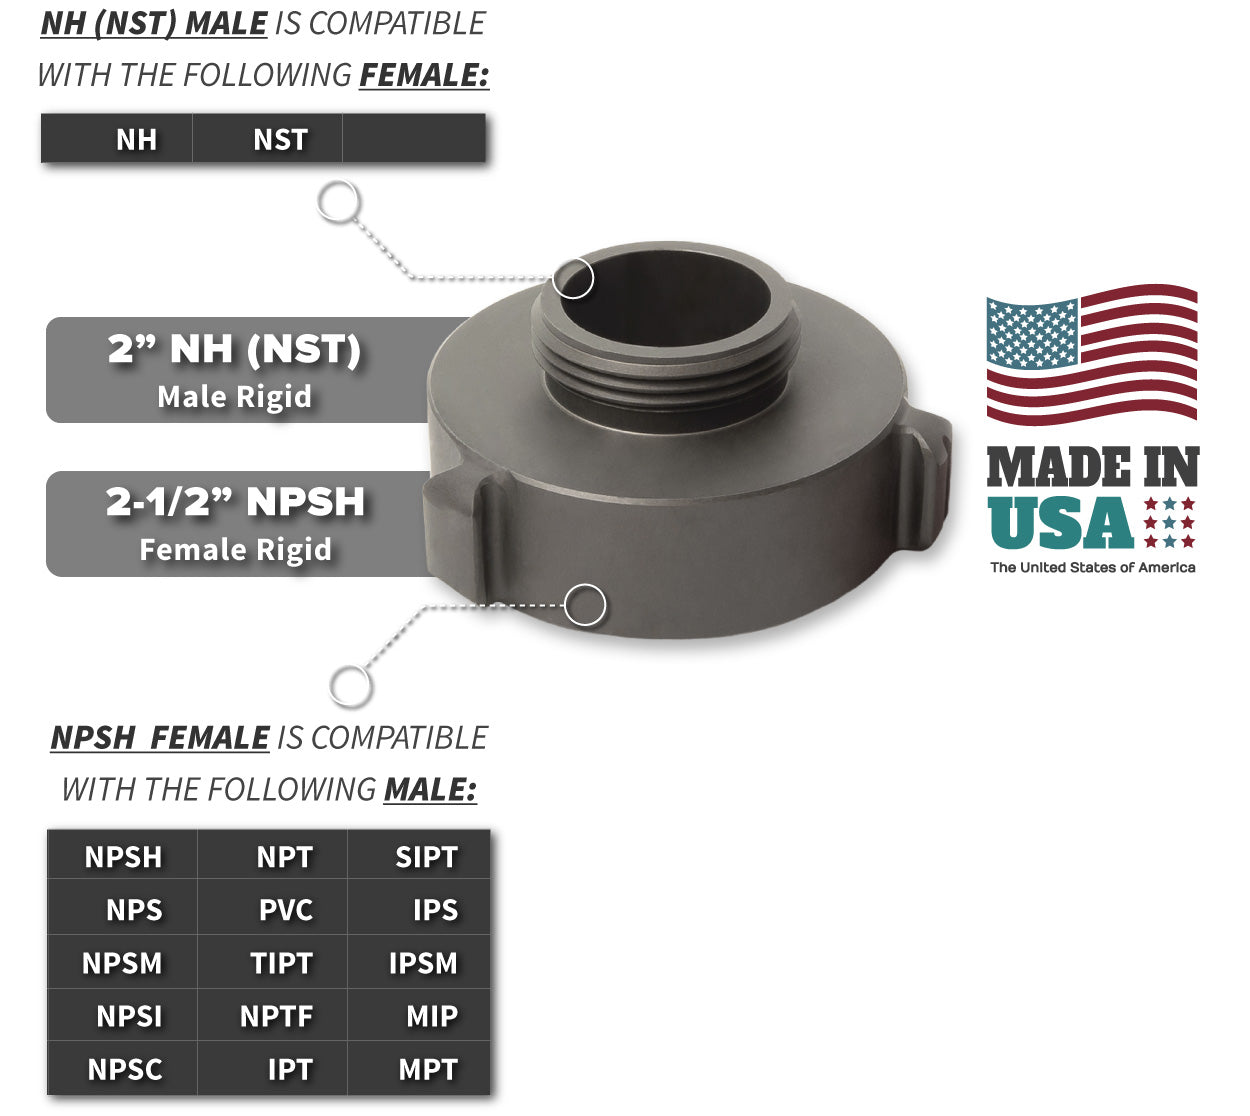 2.5 Inch NPSH Female x 2 Inch NH-NST Male Compatibility Thread Chart